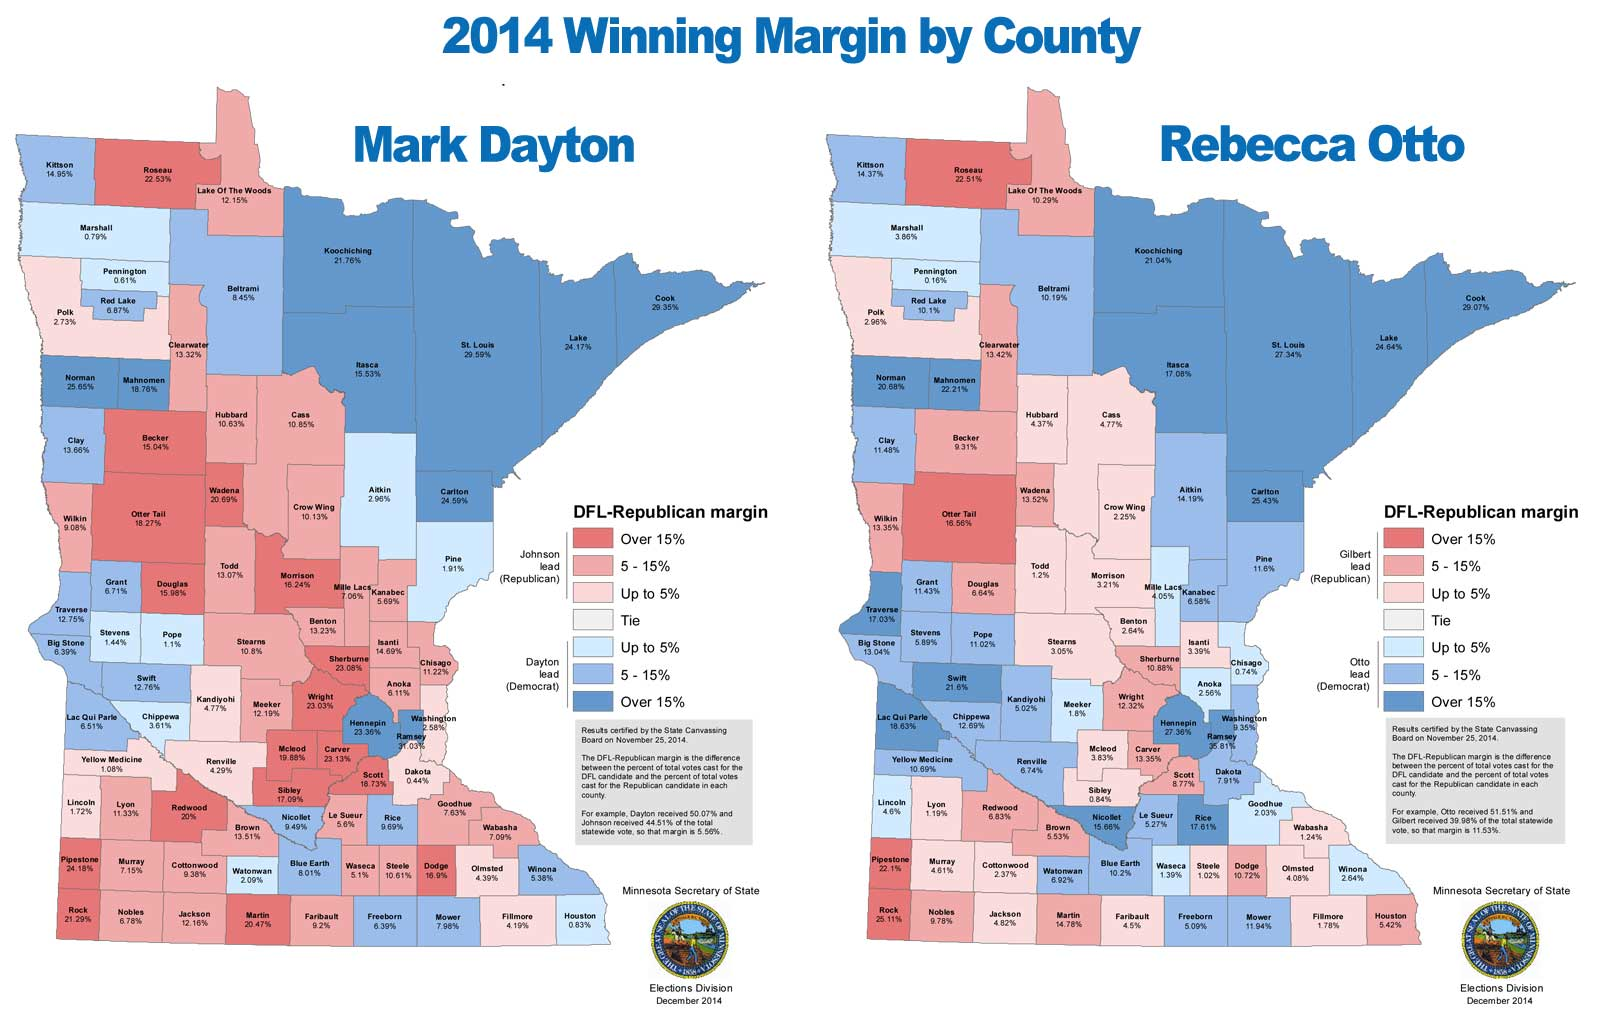 Rebecca Otto won more greater MN counties than Tim Pawlenty or Mark Dayton